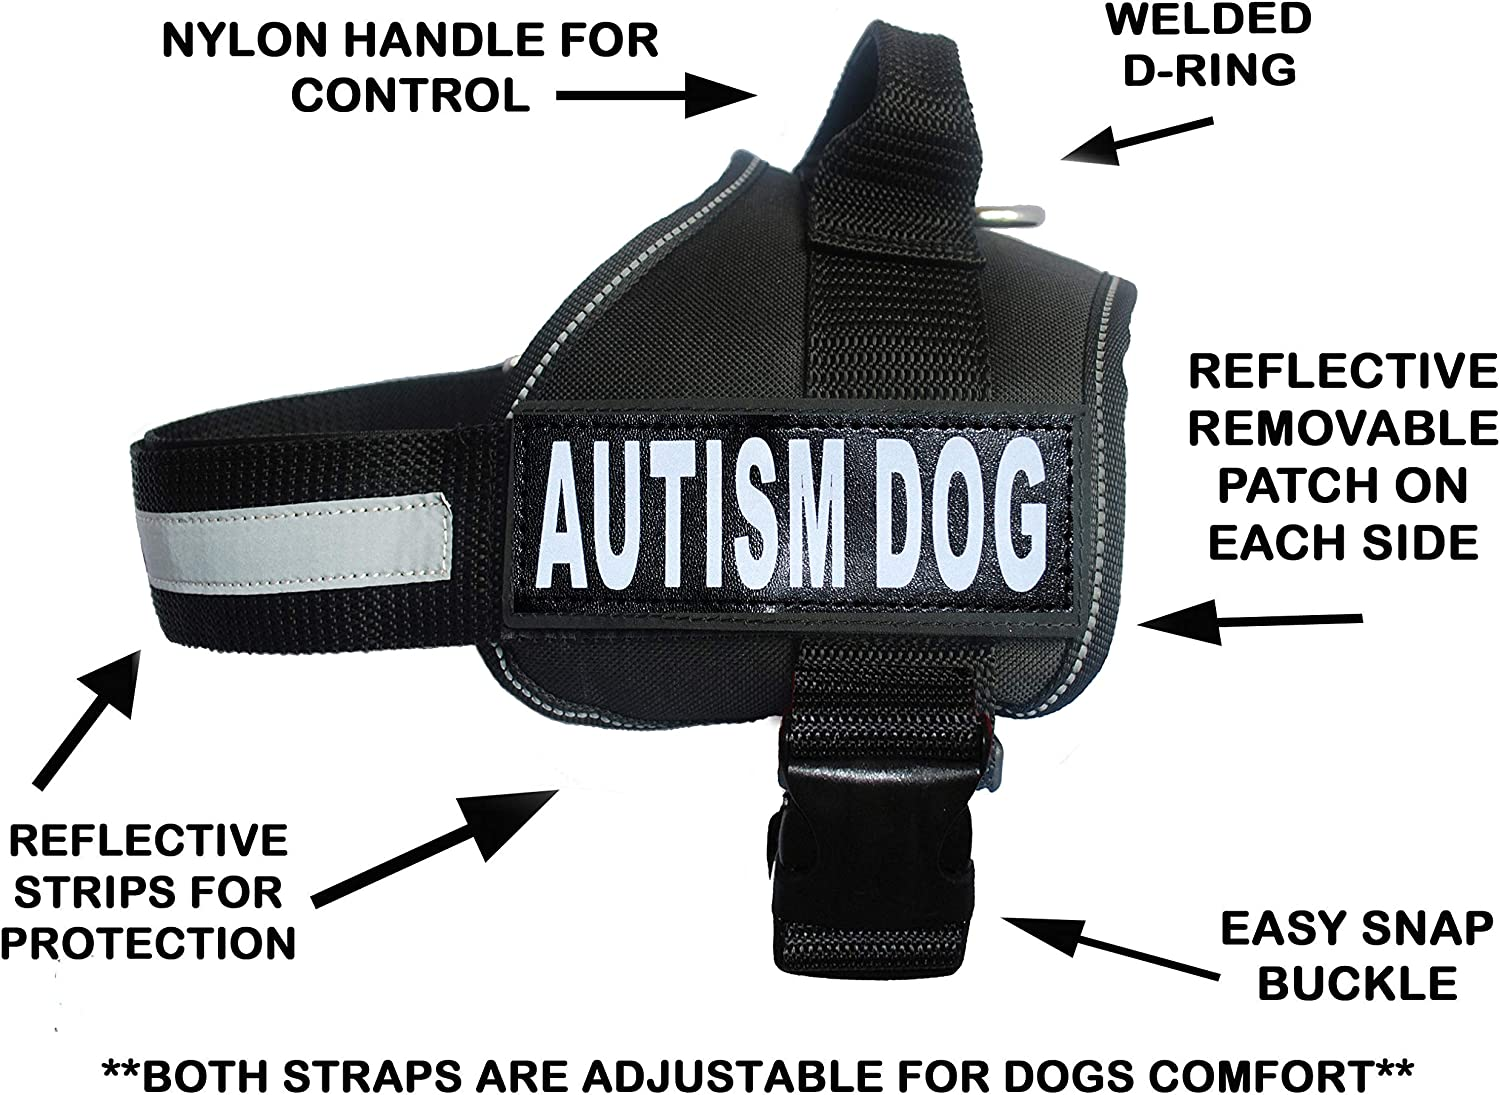 Autism Nylon Service Dog Vest Harness. Purchase Comes with 2 Reflective Autism Dog Removable Patches. Please Measure Your Dog Before Ordering